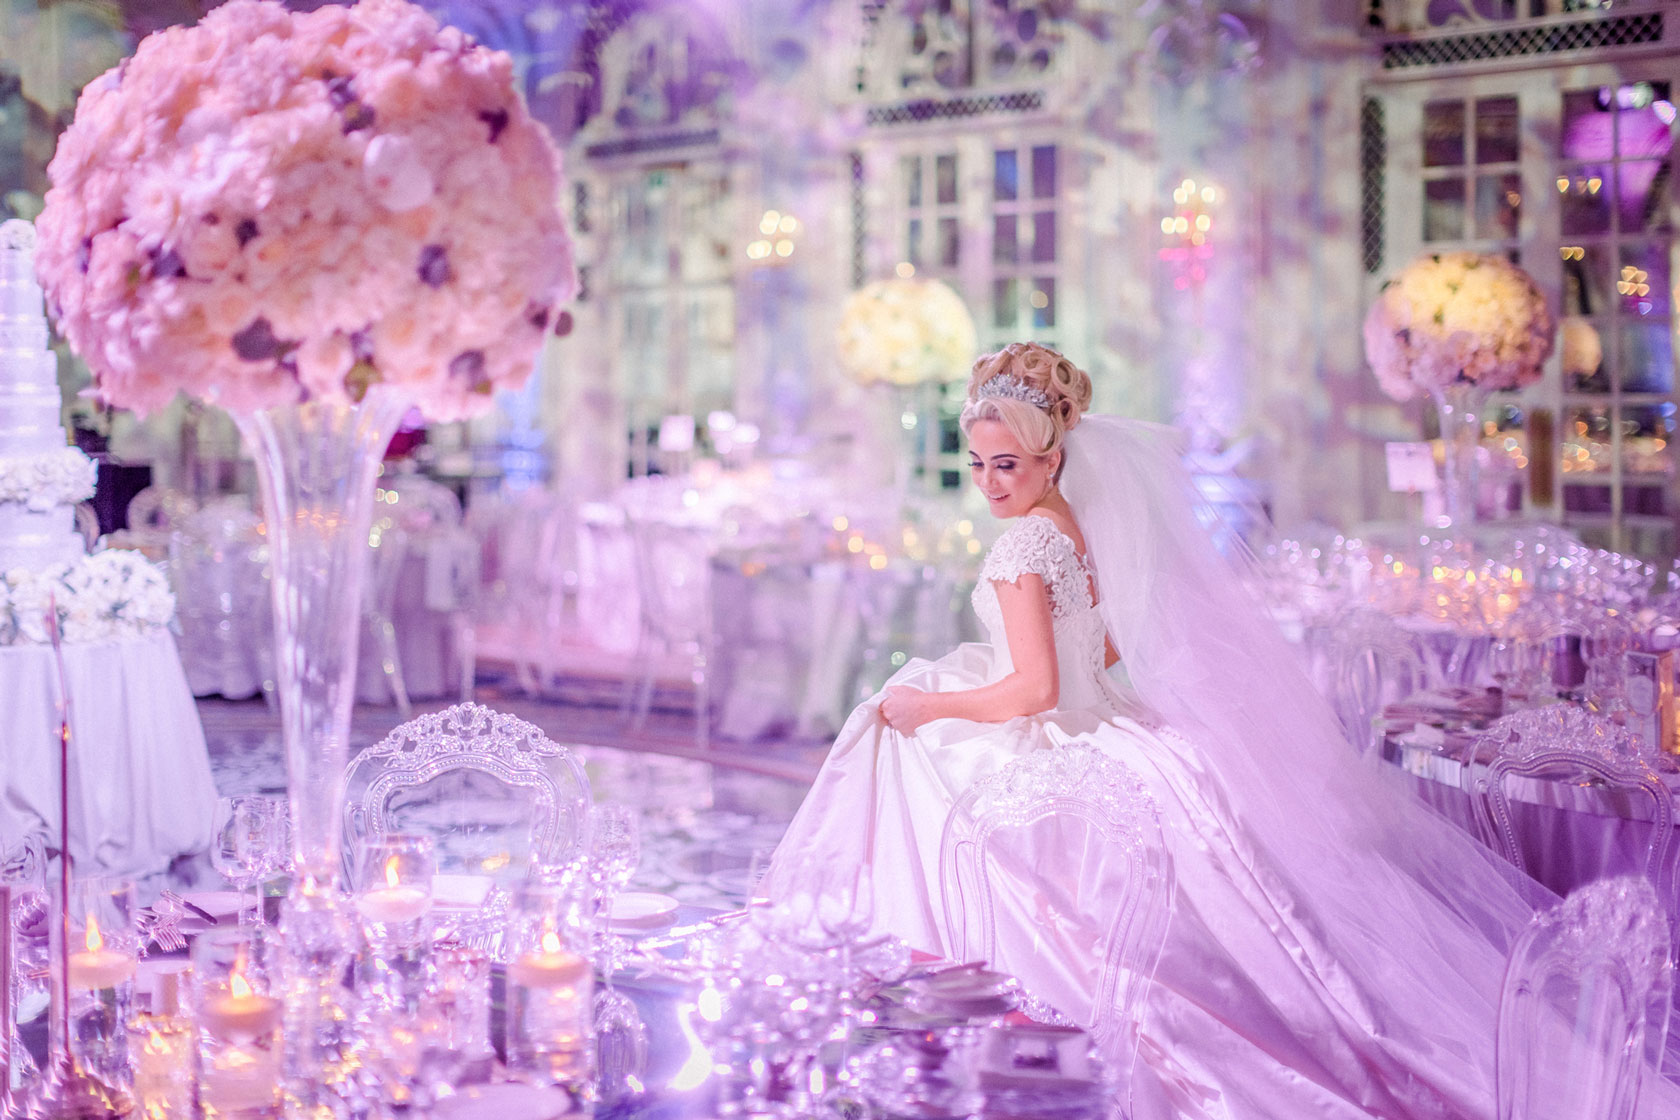 Bride at The Savoy by Amie Bone